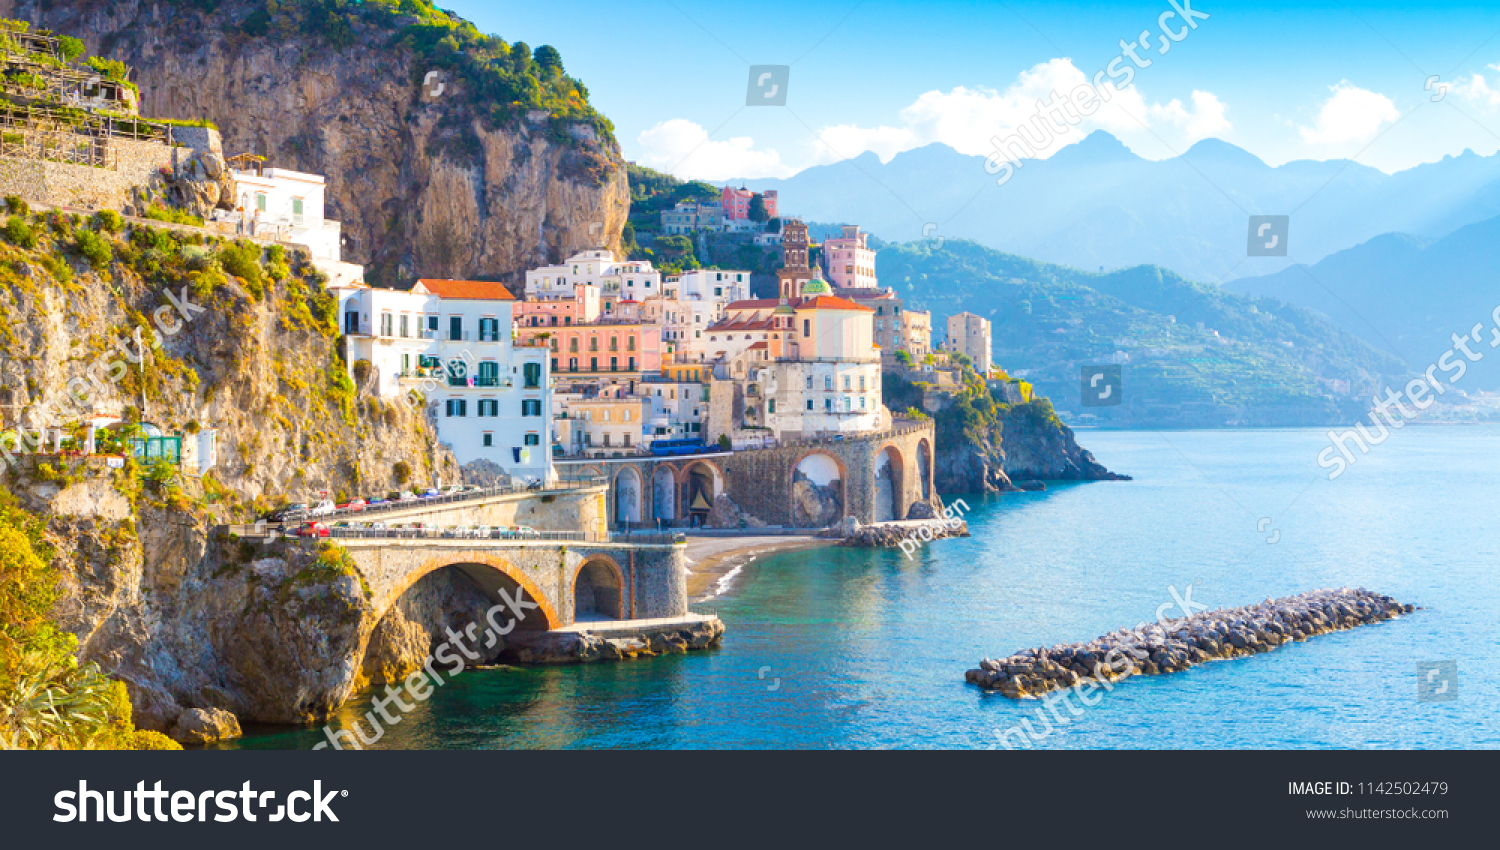 Morning view of Amalfi cityscape on coast line of mediterranean sea, Italy #1142502479